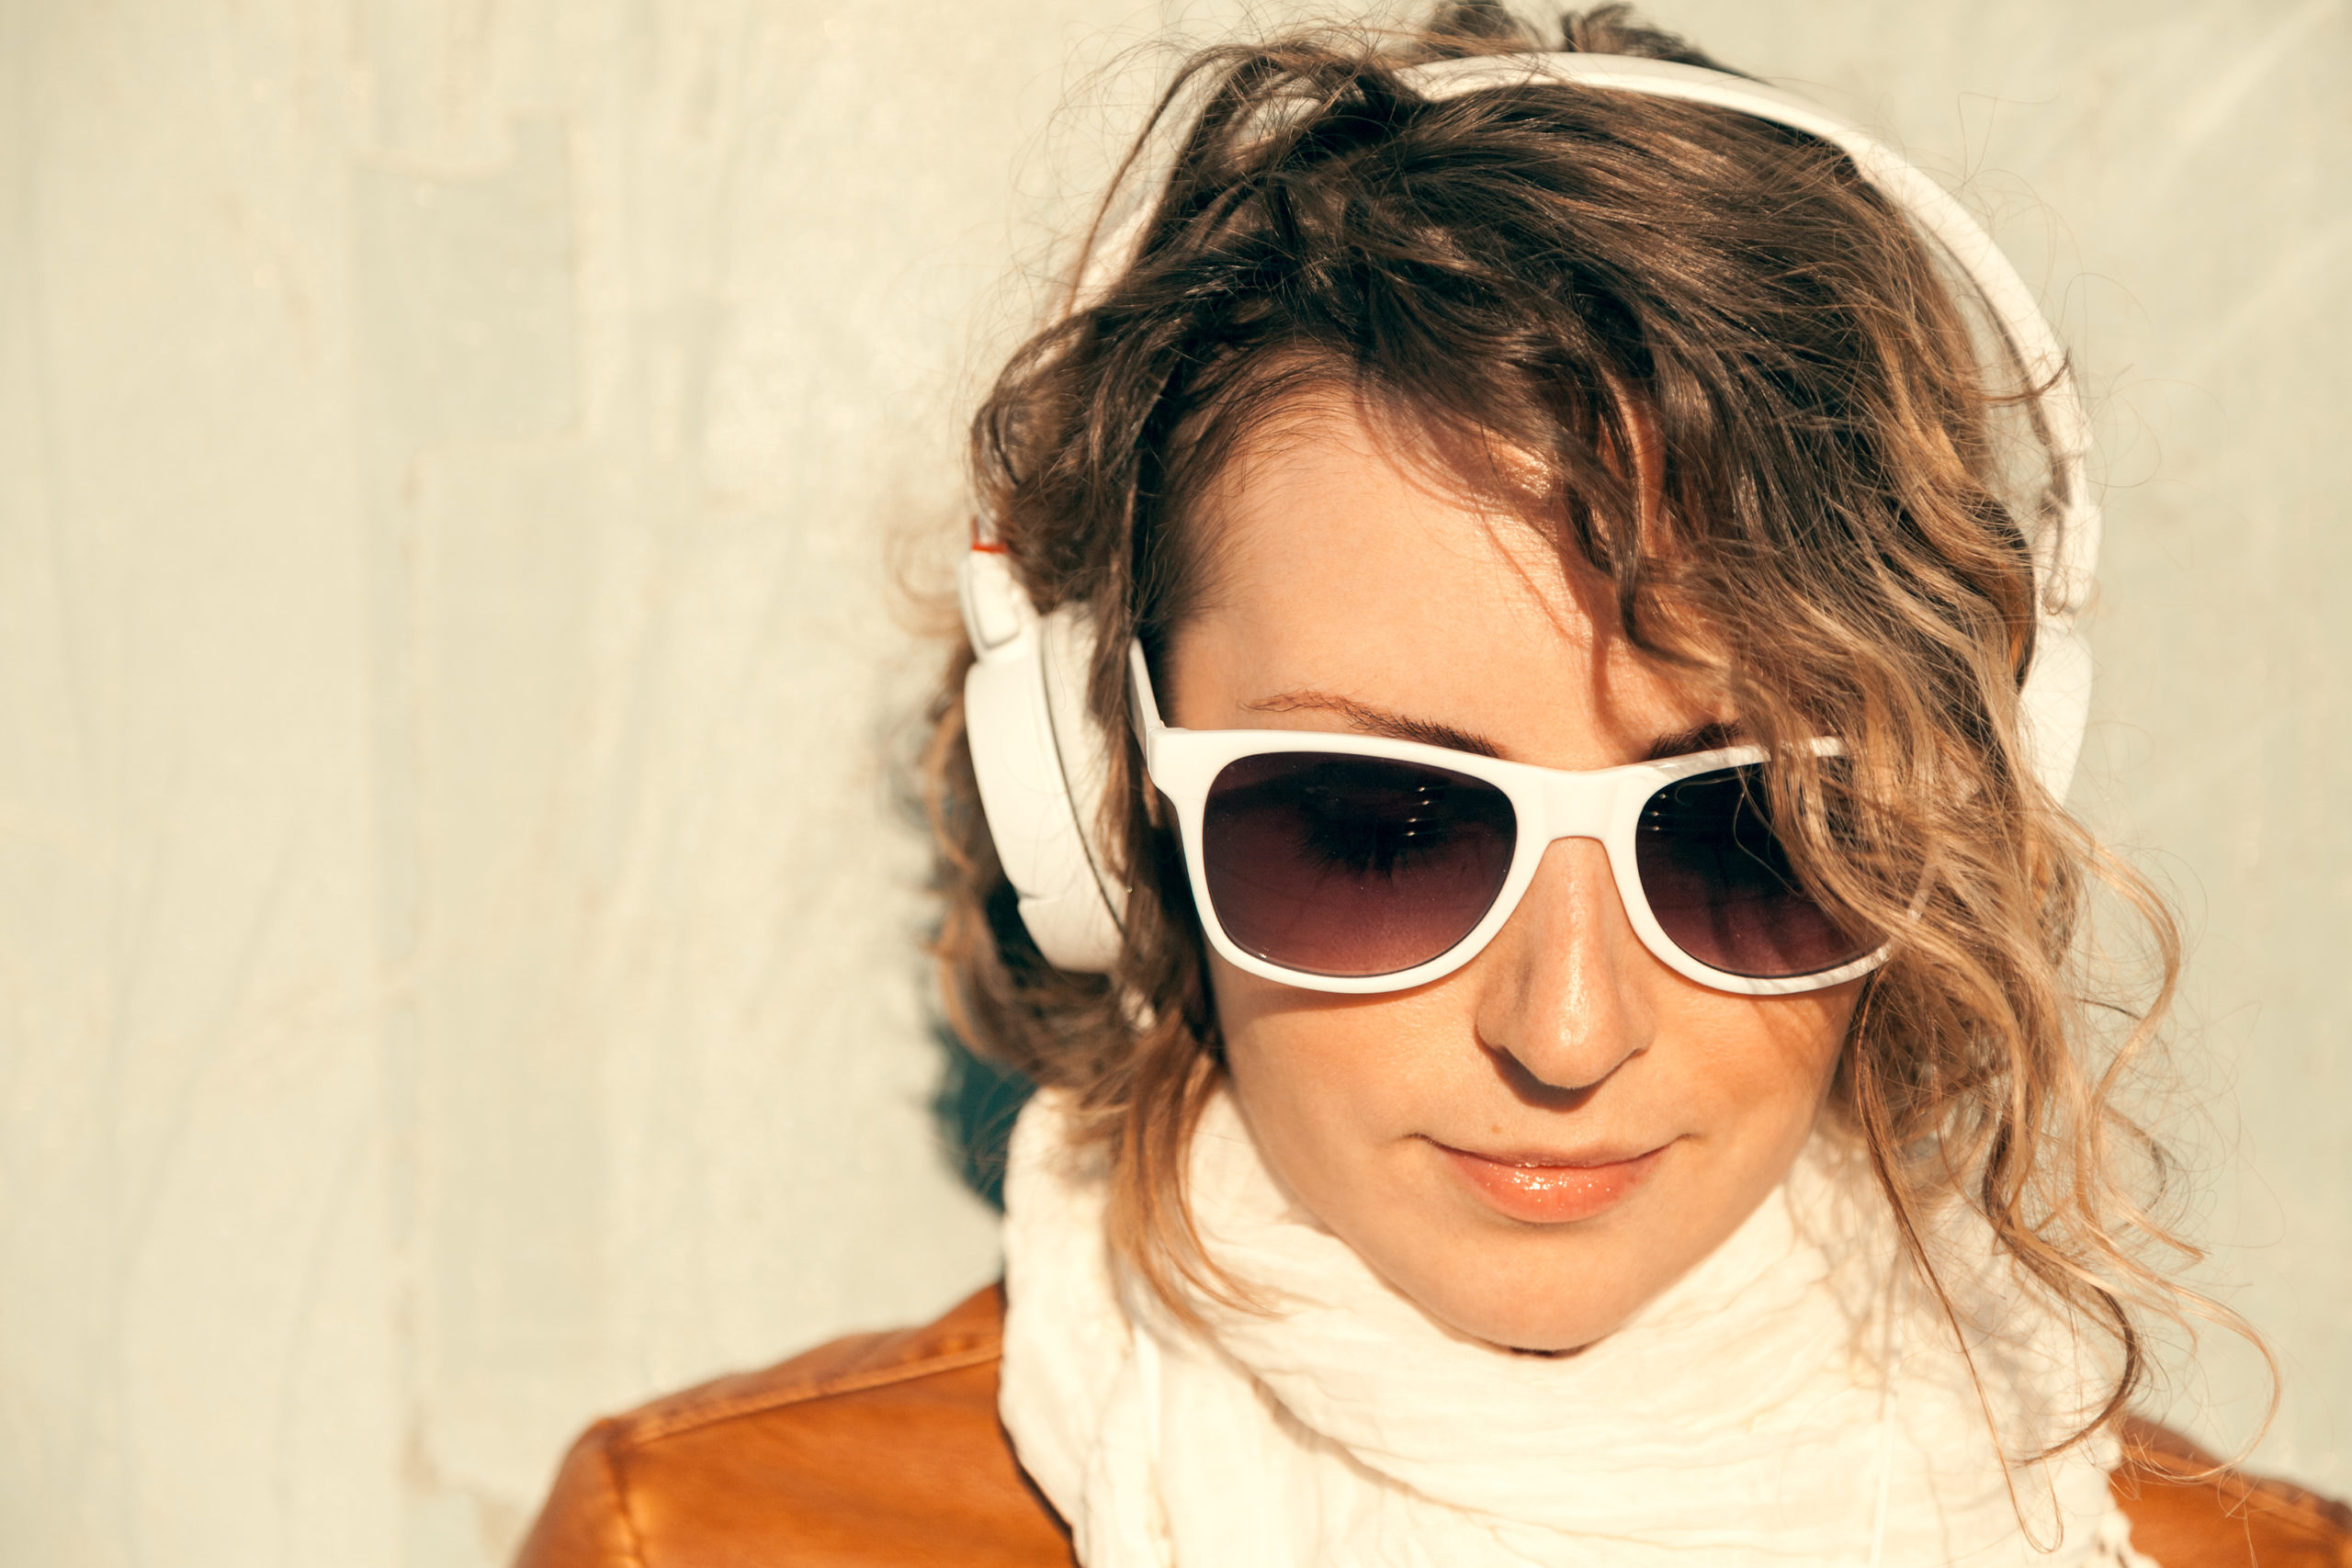 Beautiful young woman in a sunglasses and headphones listening music near the wall